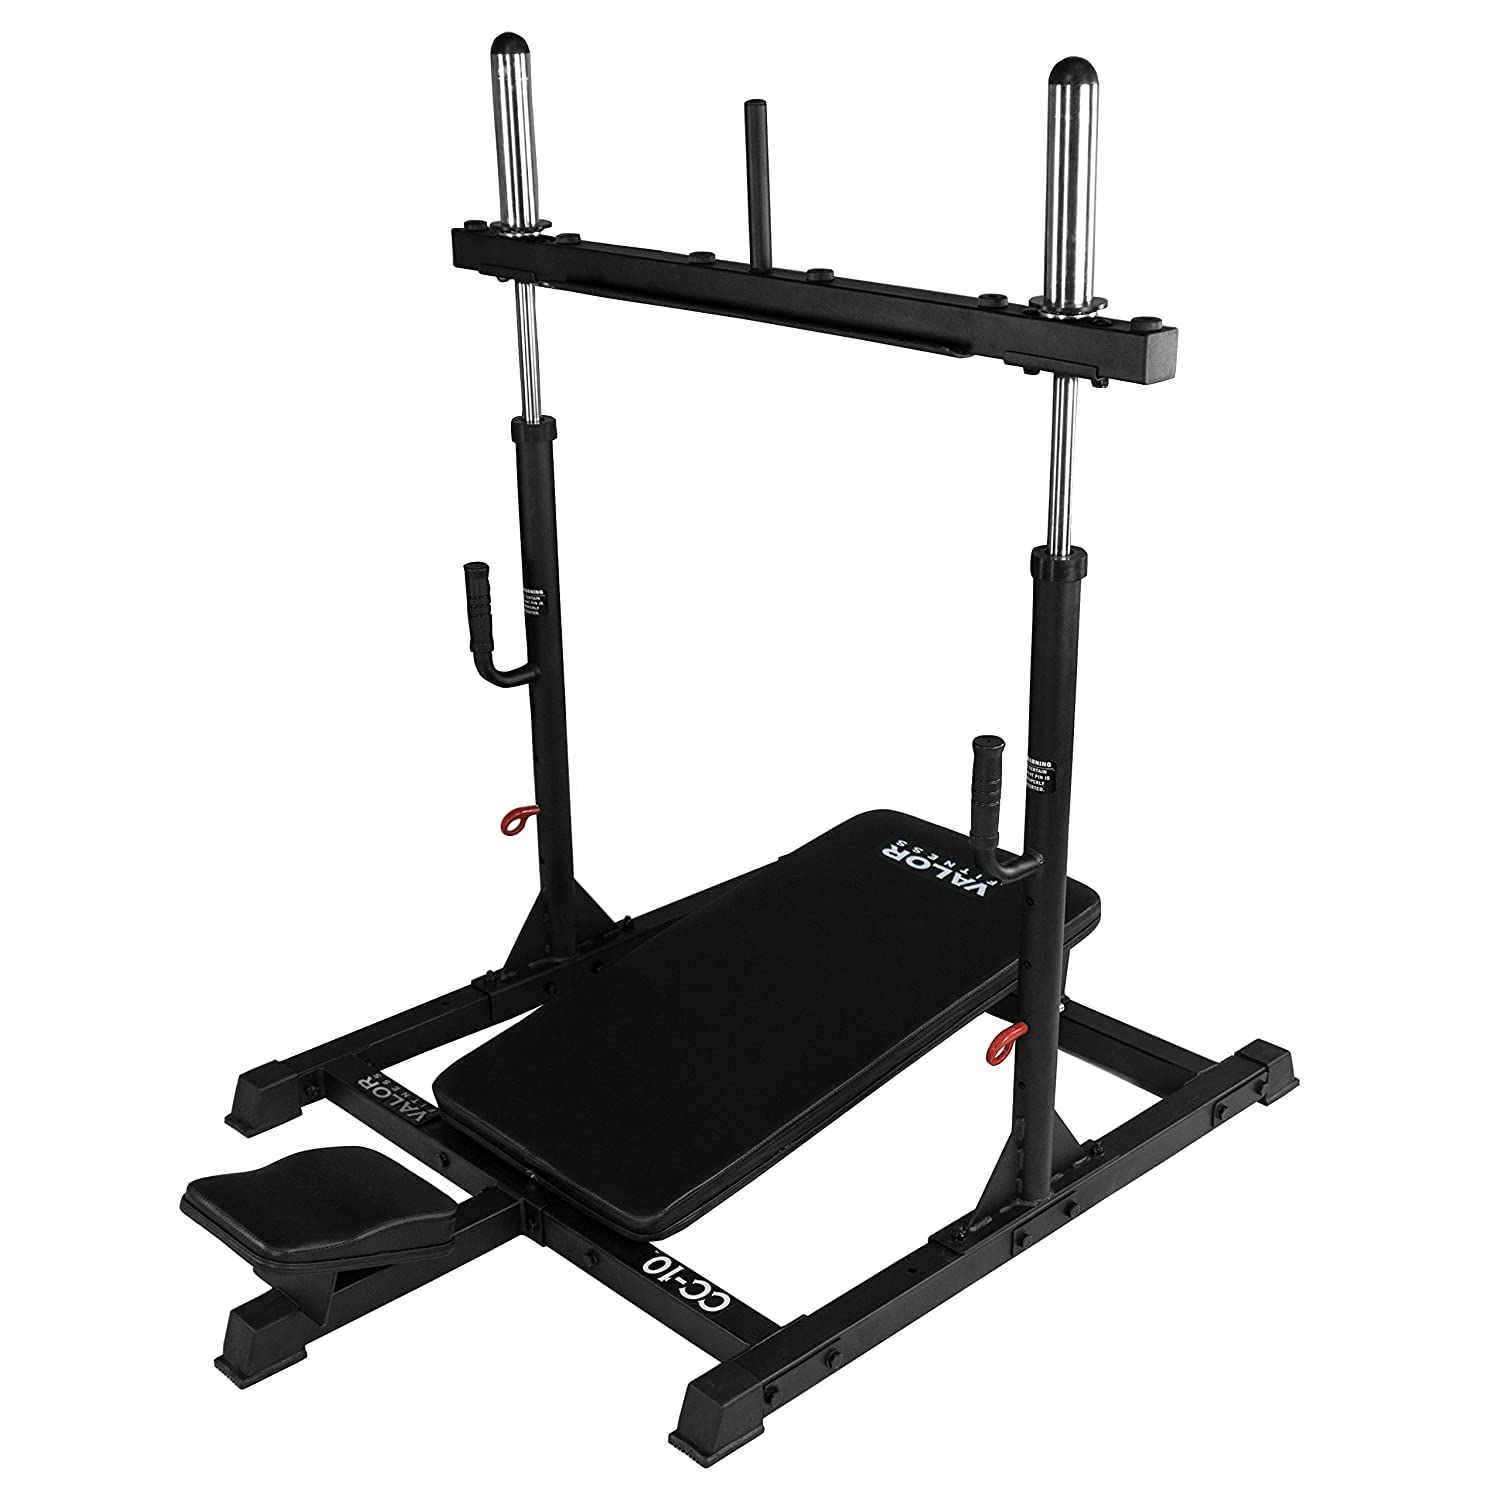 Top 10 Best Weighing Machine For Home Reviews in 2020 6